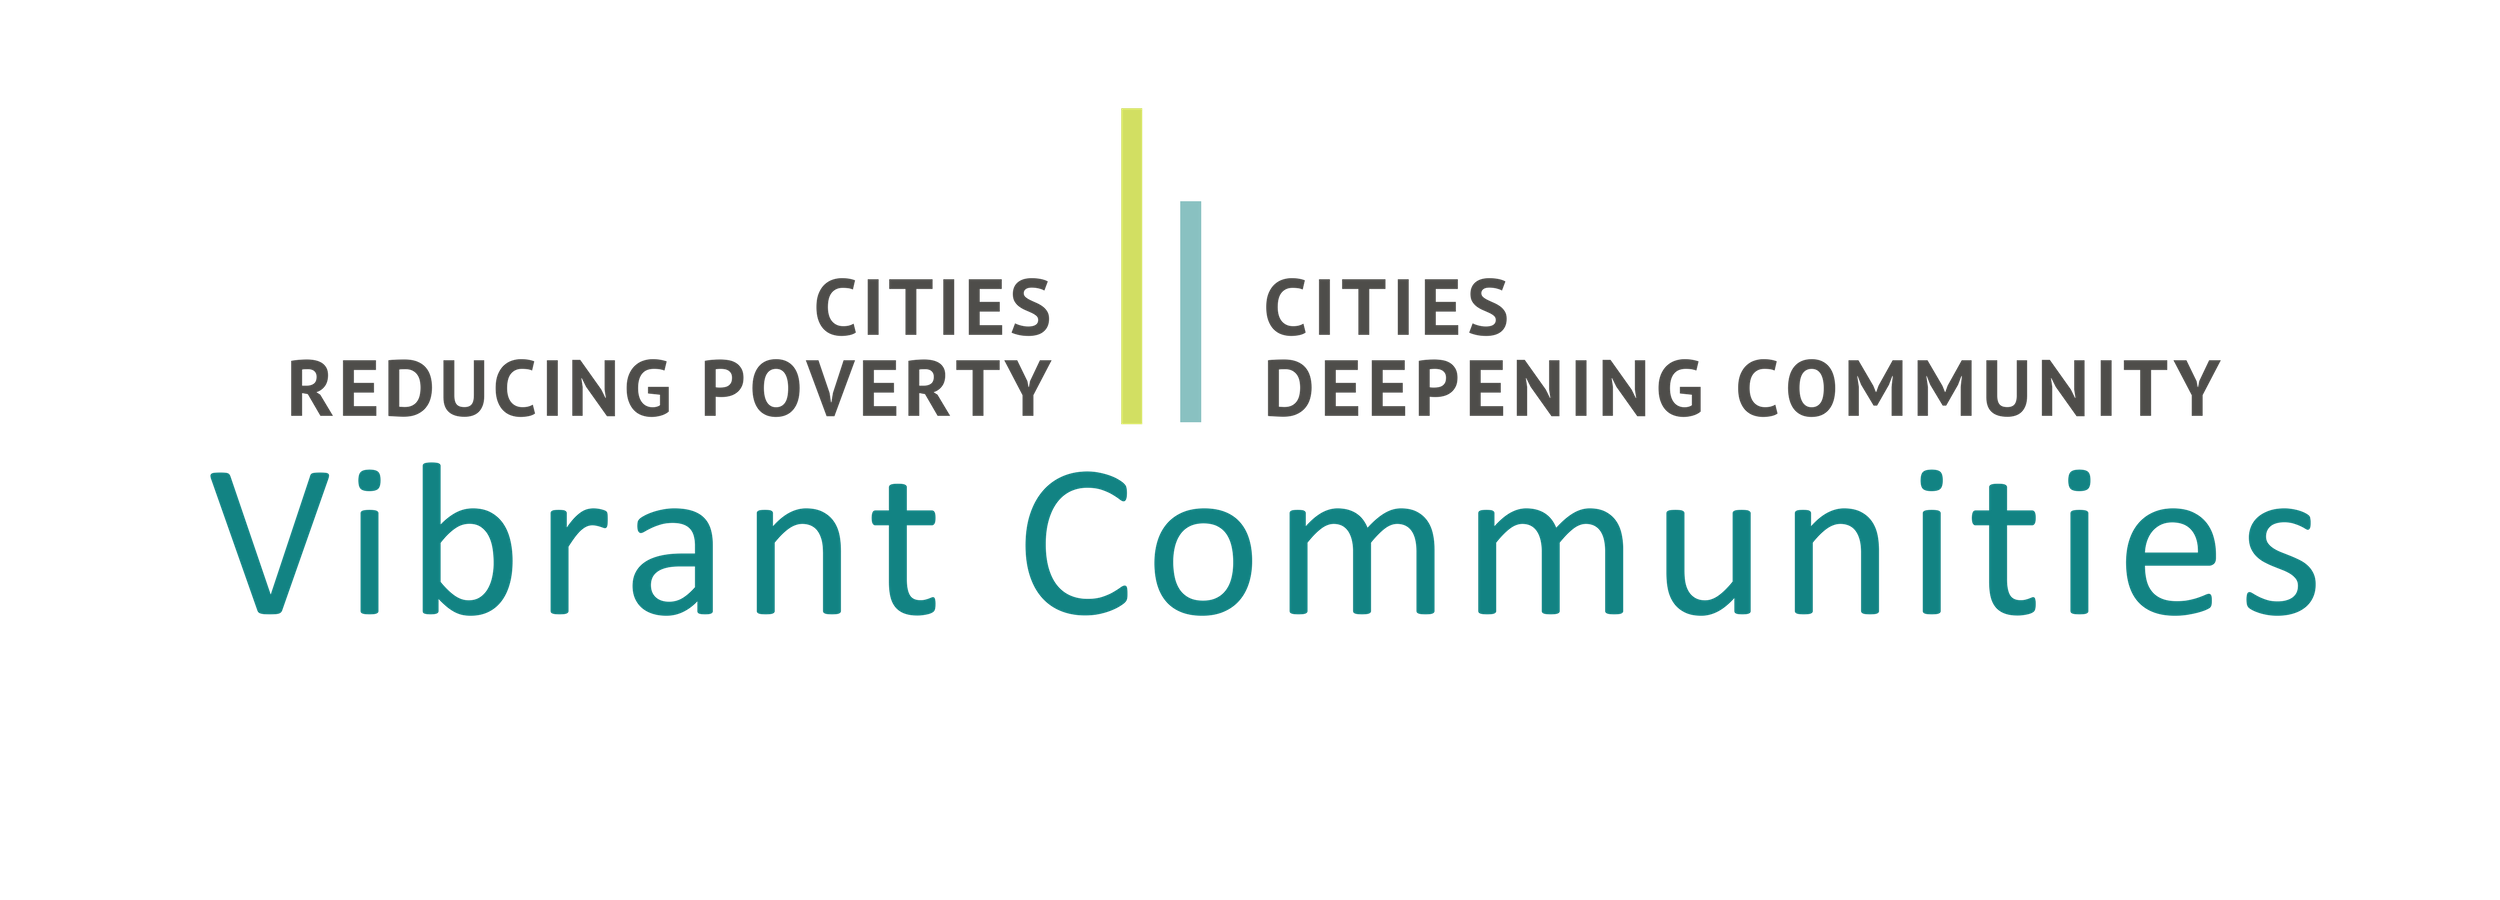 Vibrant Communities Logo.png